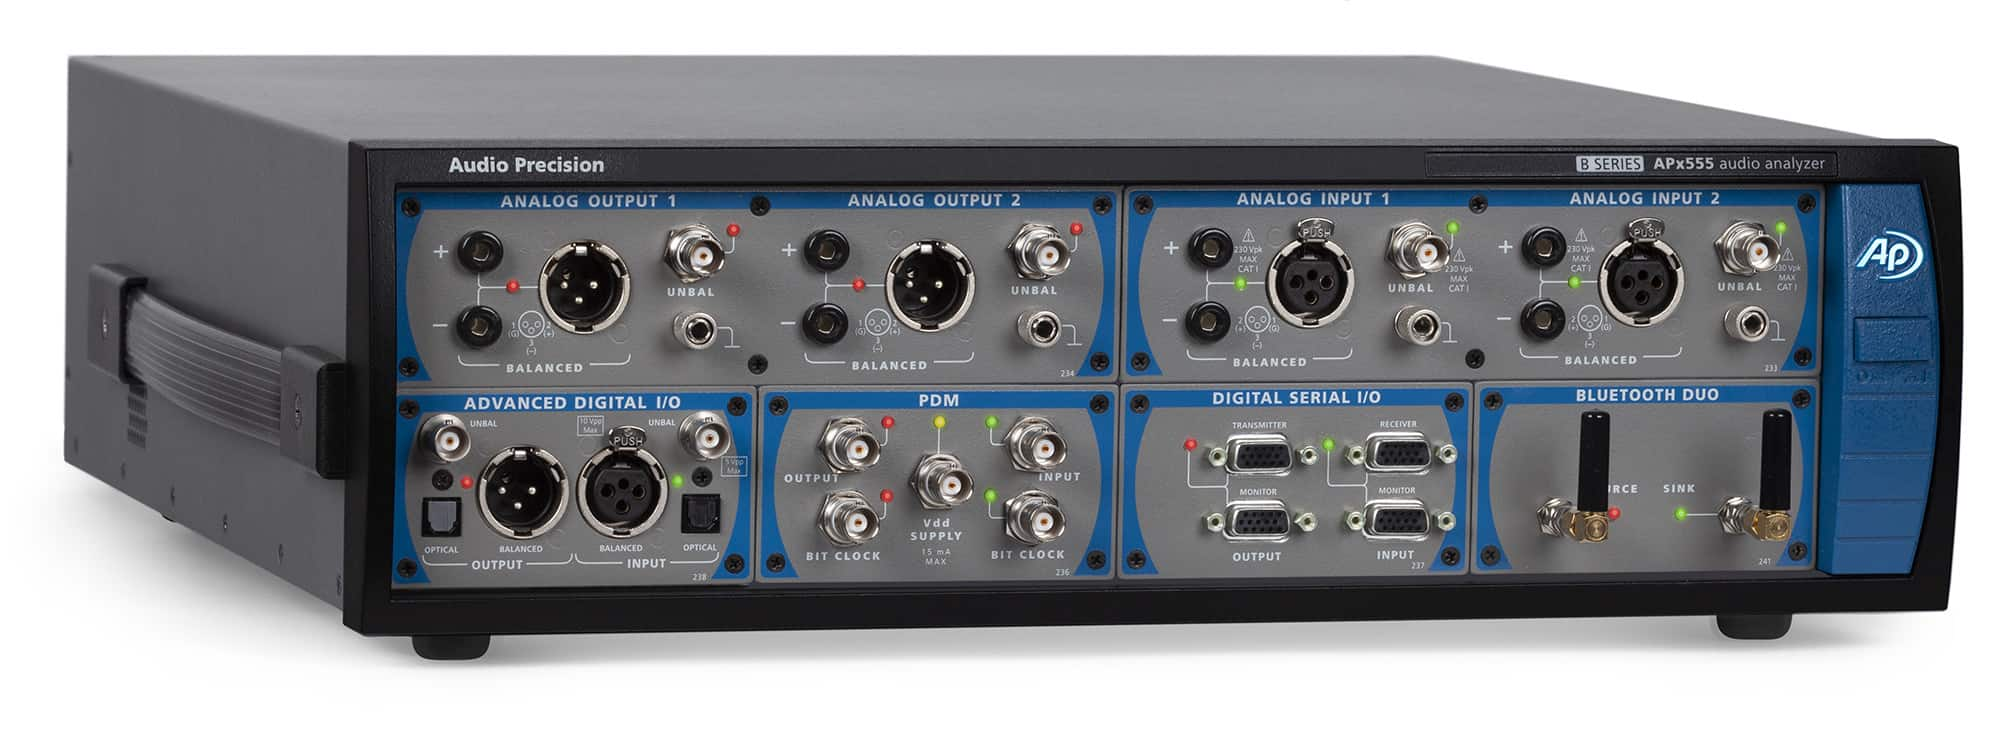 APx555 B Series High-Performance, Modular Audio Analyzer